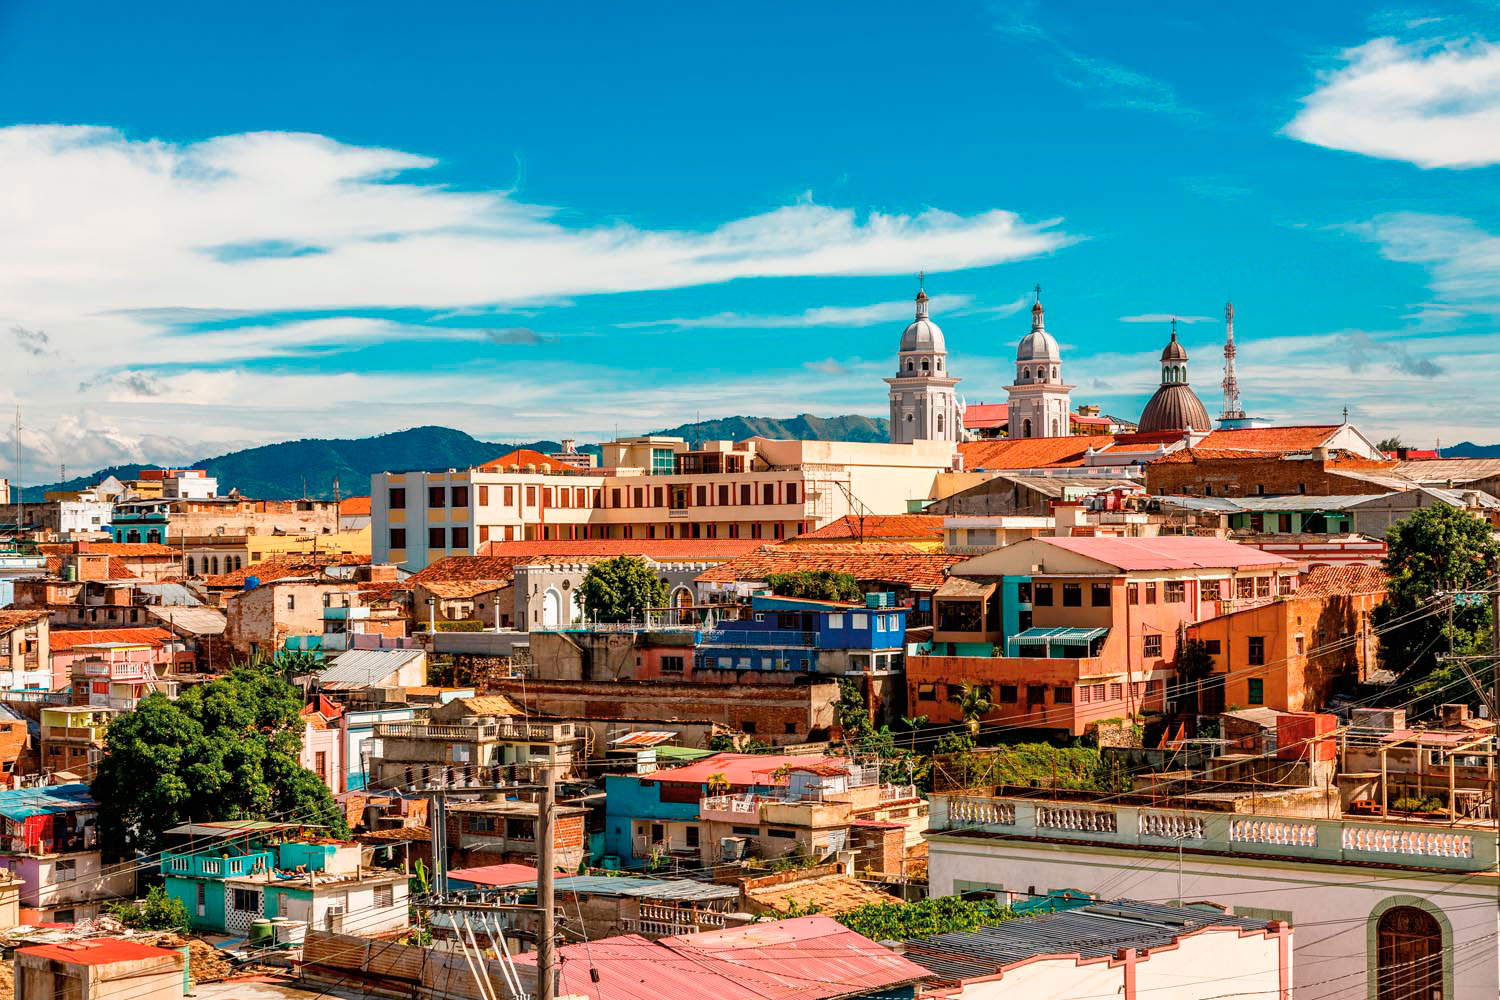 Looking over the rooftops of Santiago de Cuba to the towers of the cathedral. Photo by Vadim Nefedoff/Shutterstock.com